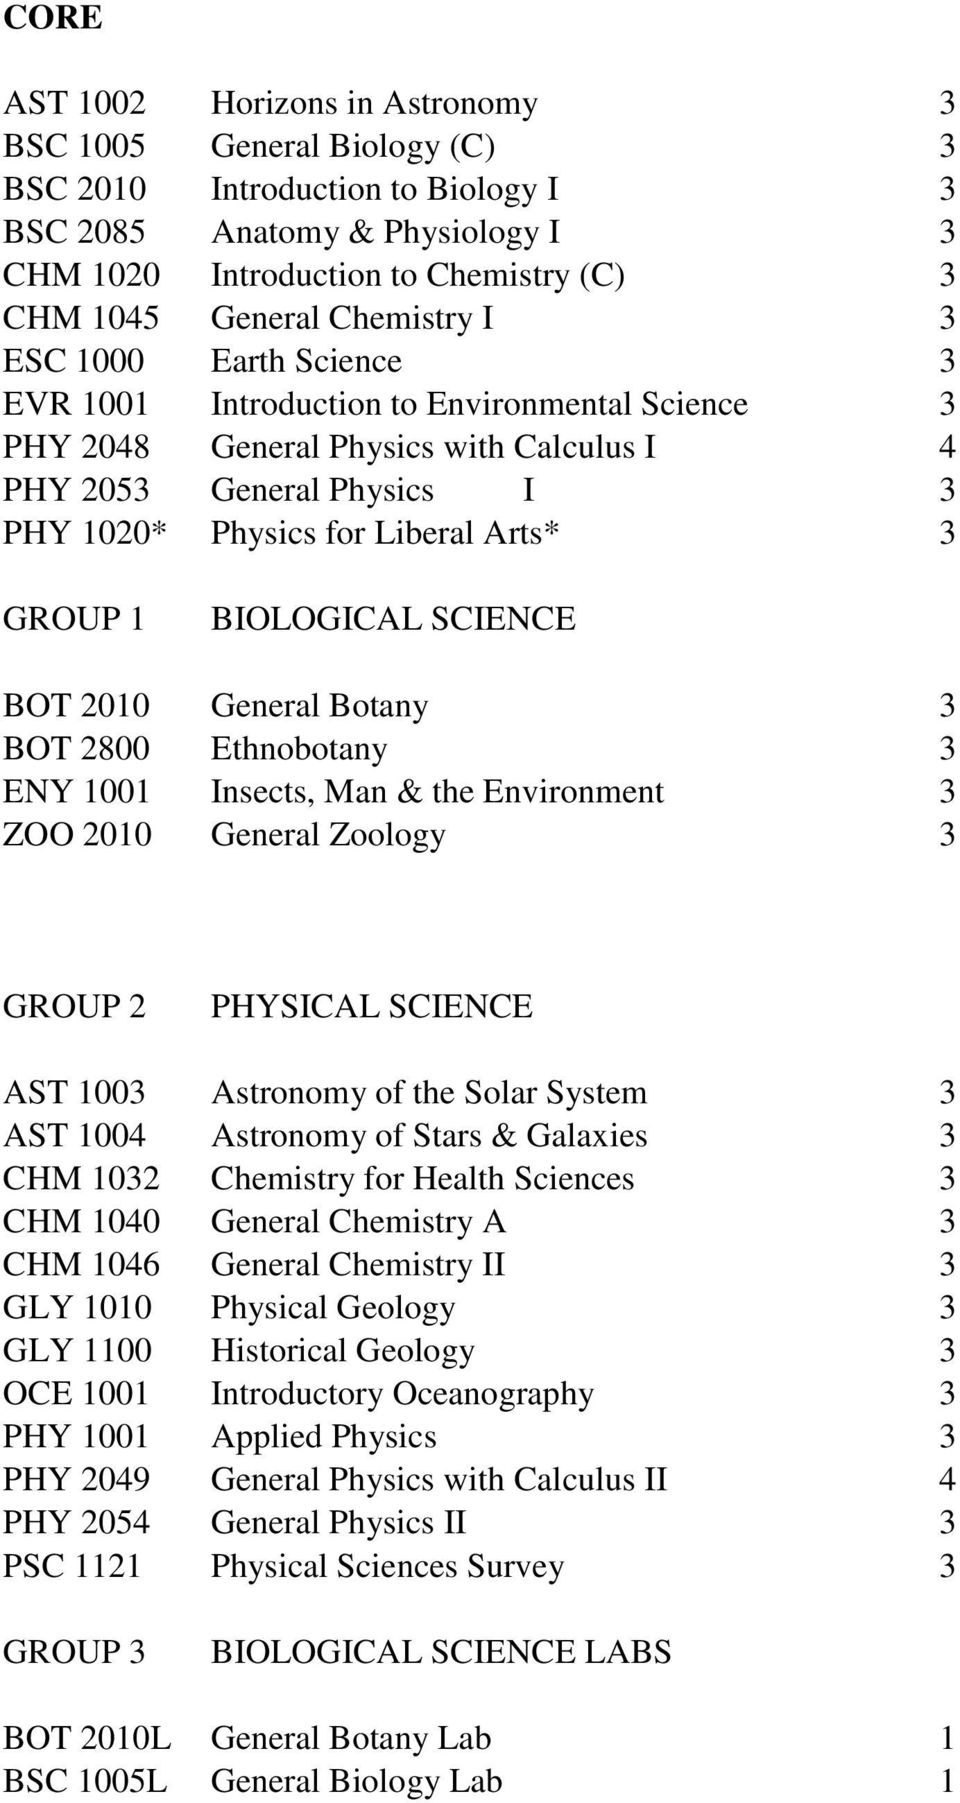 GROUP 1 BIOLOGICAL SCIENCE BOT 2010 General Botany 3 BOT 2800 Ethnobotany 3 ENY 1001 Insects, Man & the Environment 3 ZOO 2010 General Zoology 3 GROUP 2 PHYSICAL SCIENCE AST 1003 Astronomy of the